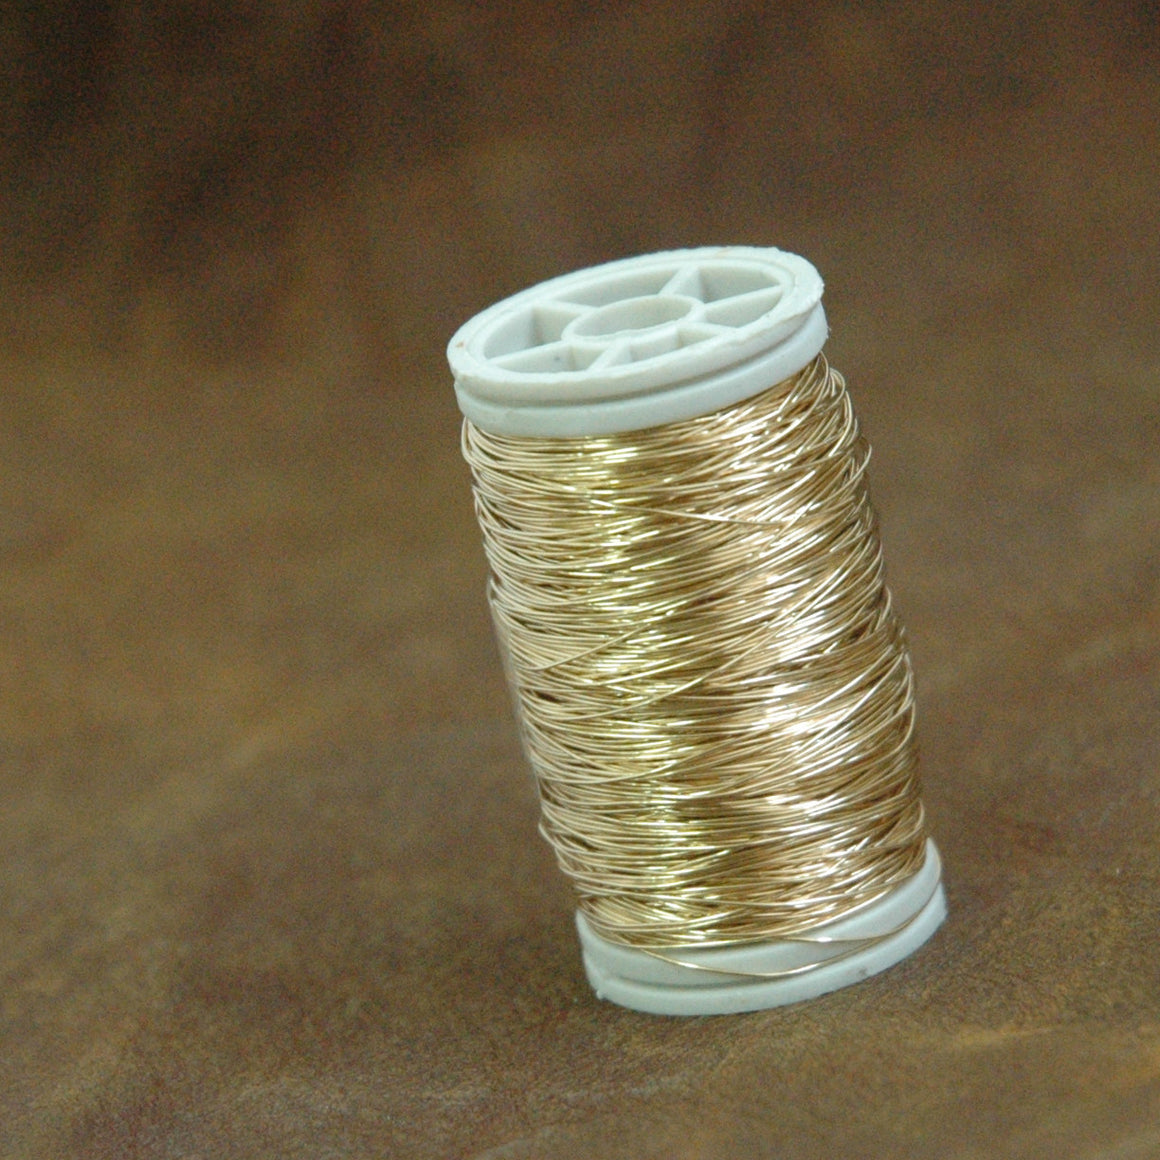 Gold filled wire , dead soft gold filled , 28gauge , wire crochet supplies, gold wire, 80ft 26 yard - Yooladesign